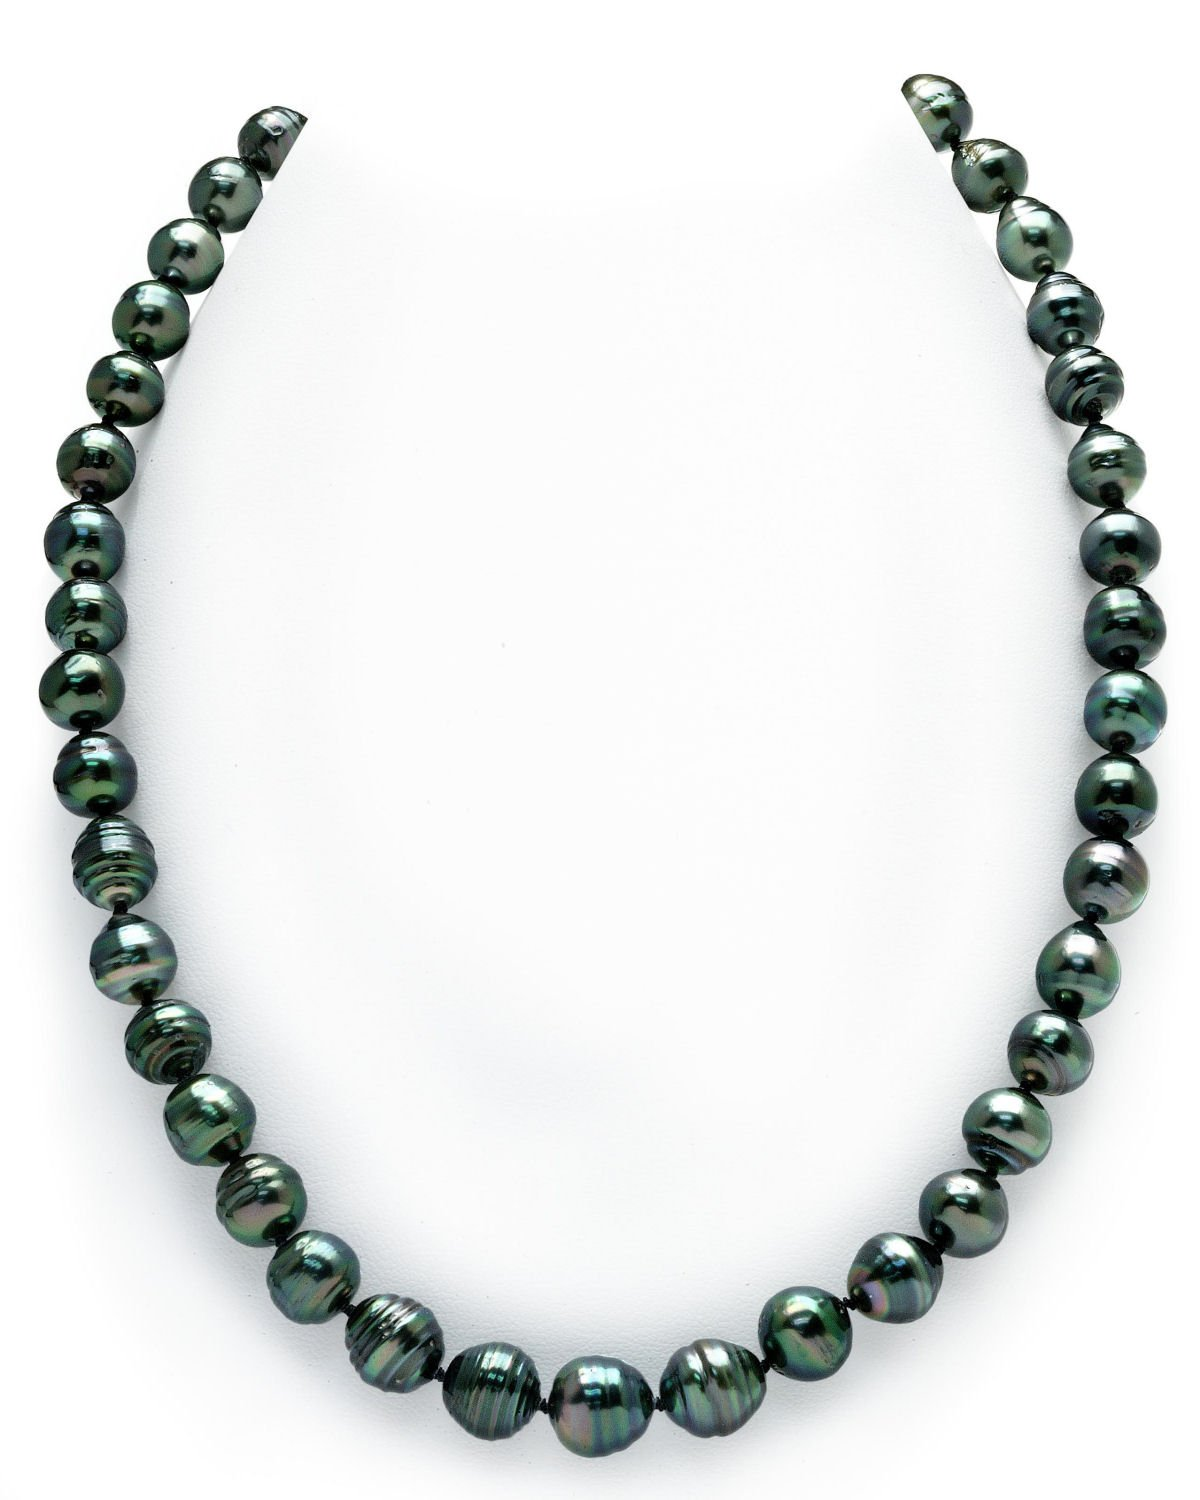 14K Gold 8-10mm Dark Tahitian South Sea Baroque Cultured Pearl Necklace - AAA Quality, 17'' Length